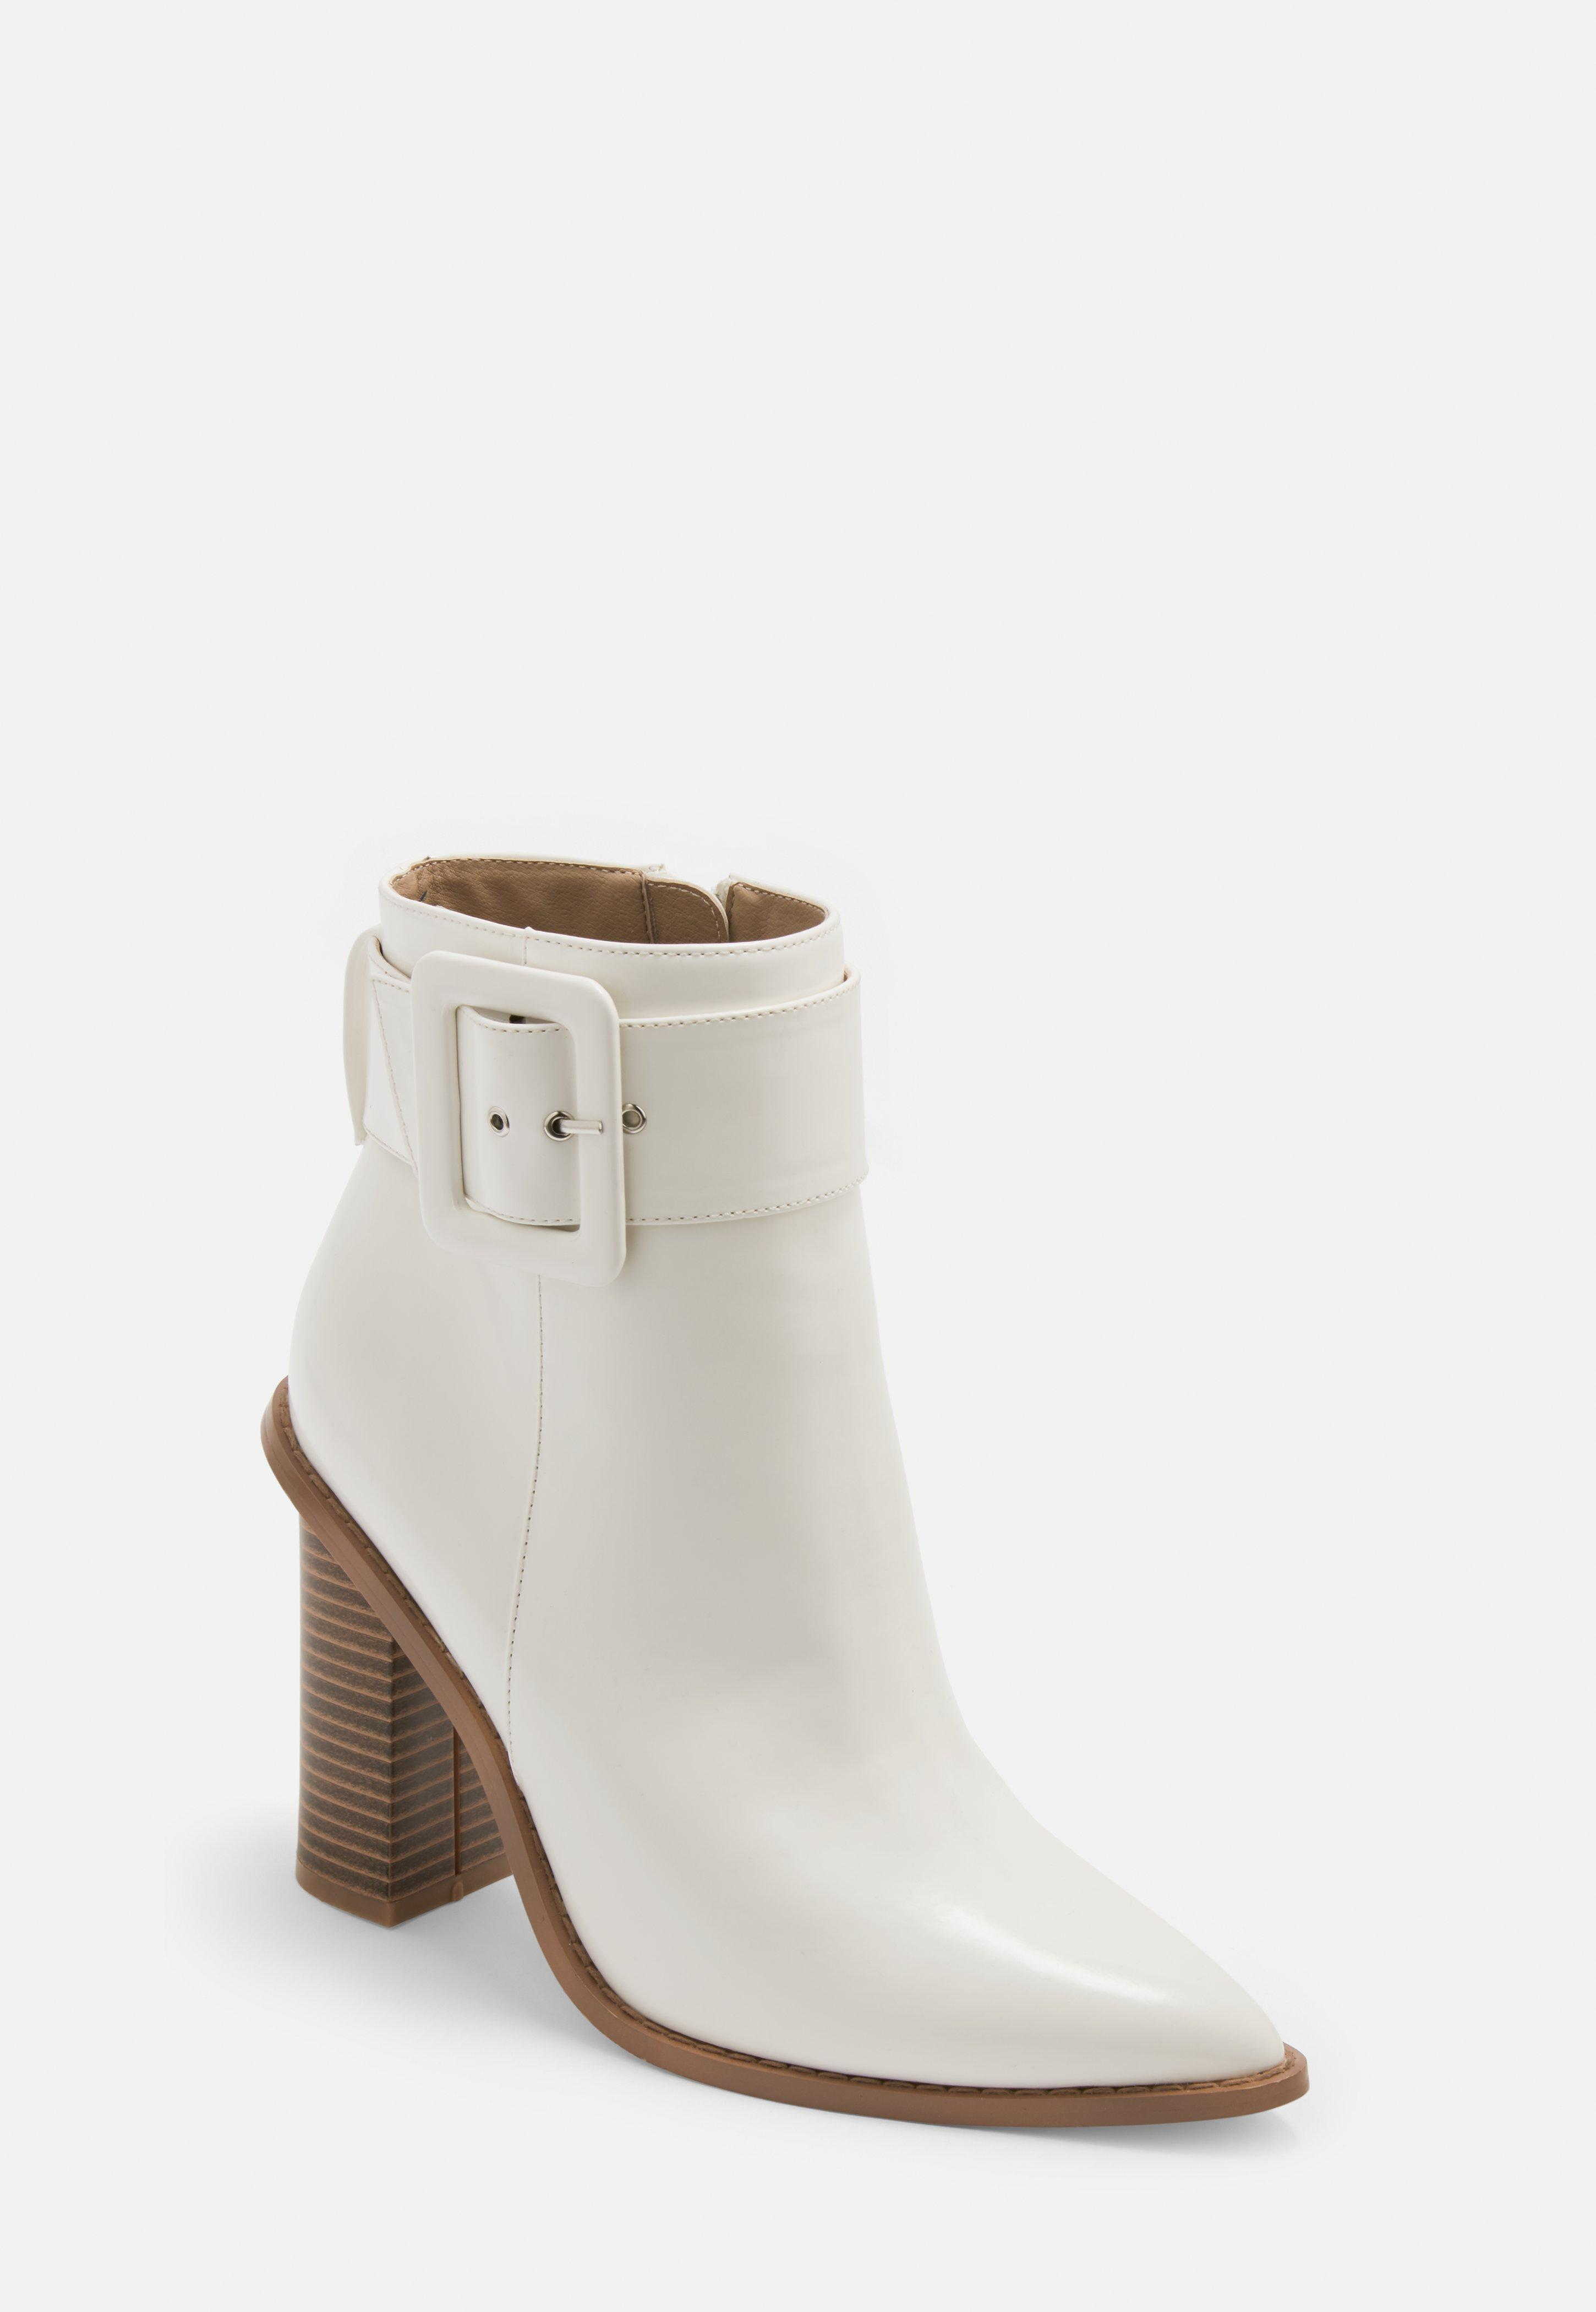 ebf83b3616f White Buckle Block Heel Pointed Ankle Boots